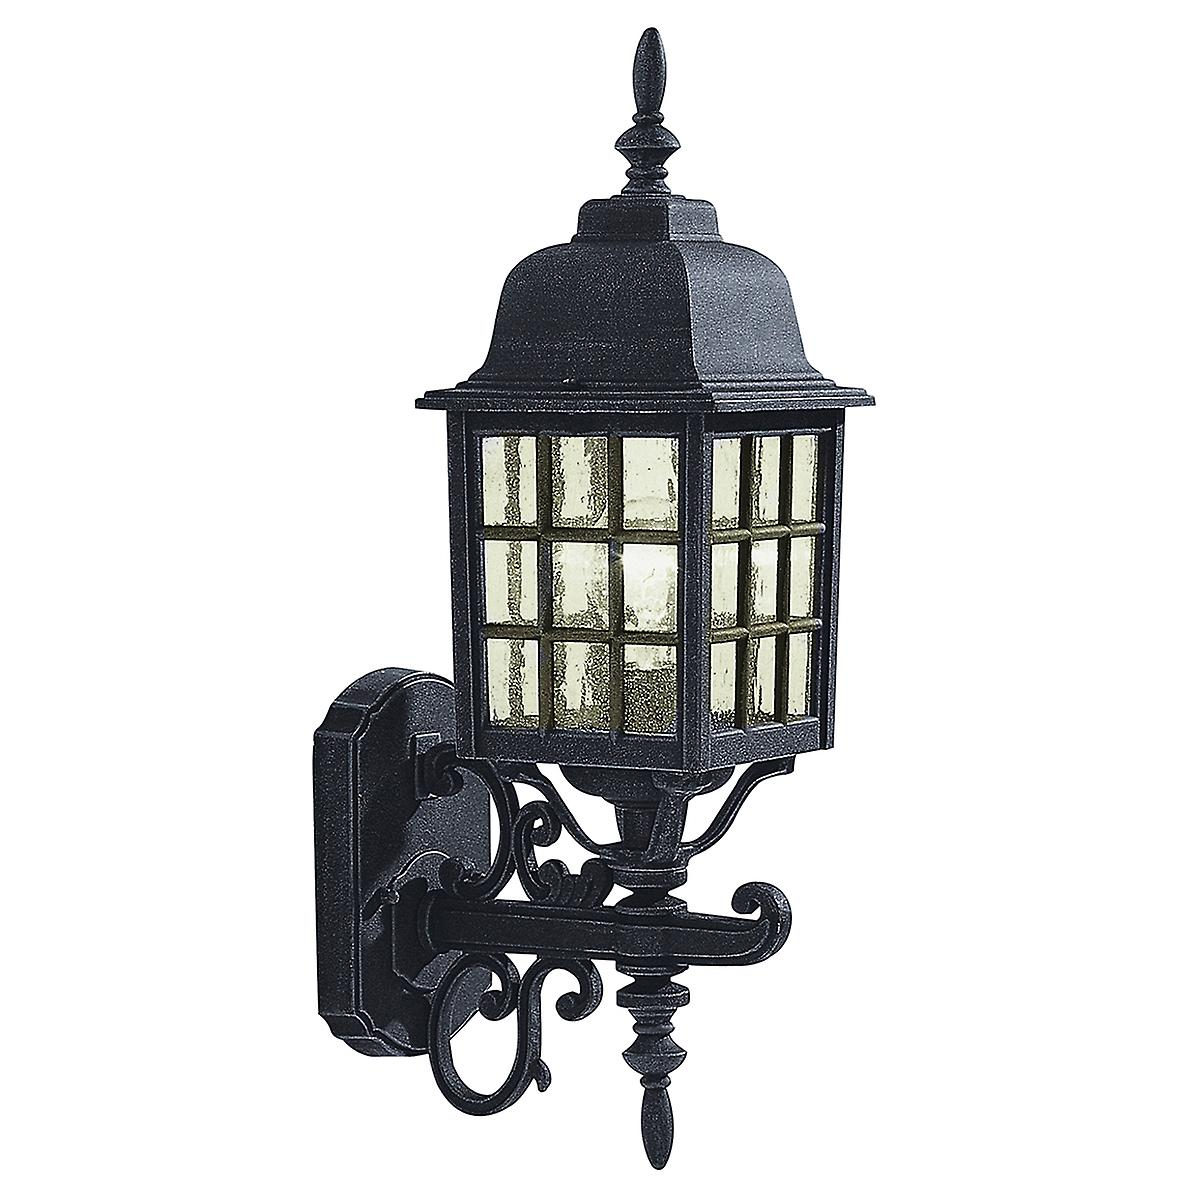 Dar NOR1622 Norfolk Wall Bracket Uplighter With A Black Finish